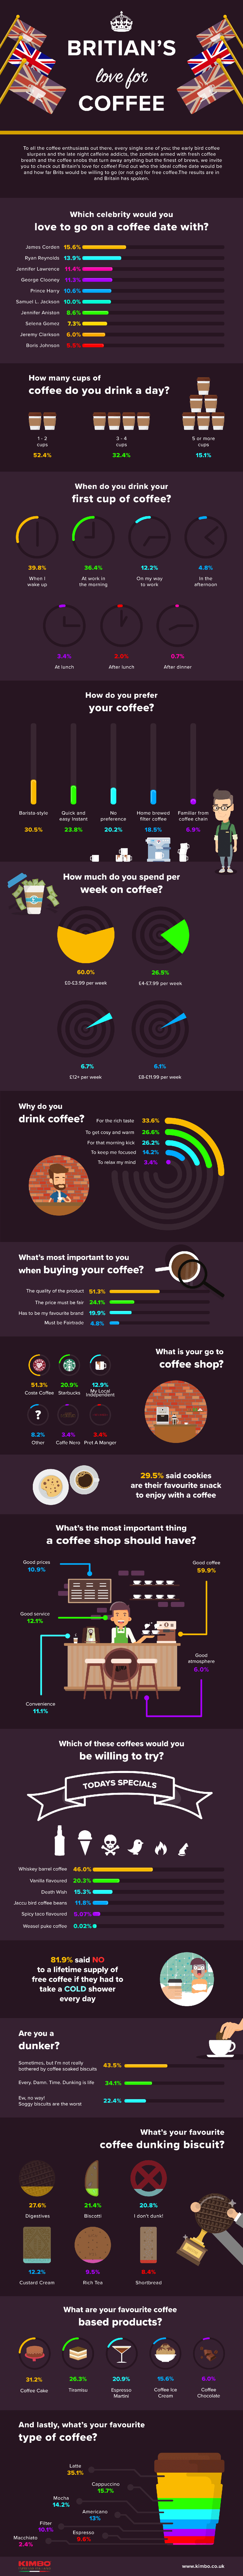 Britain's Love For Coffee